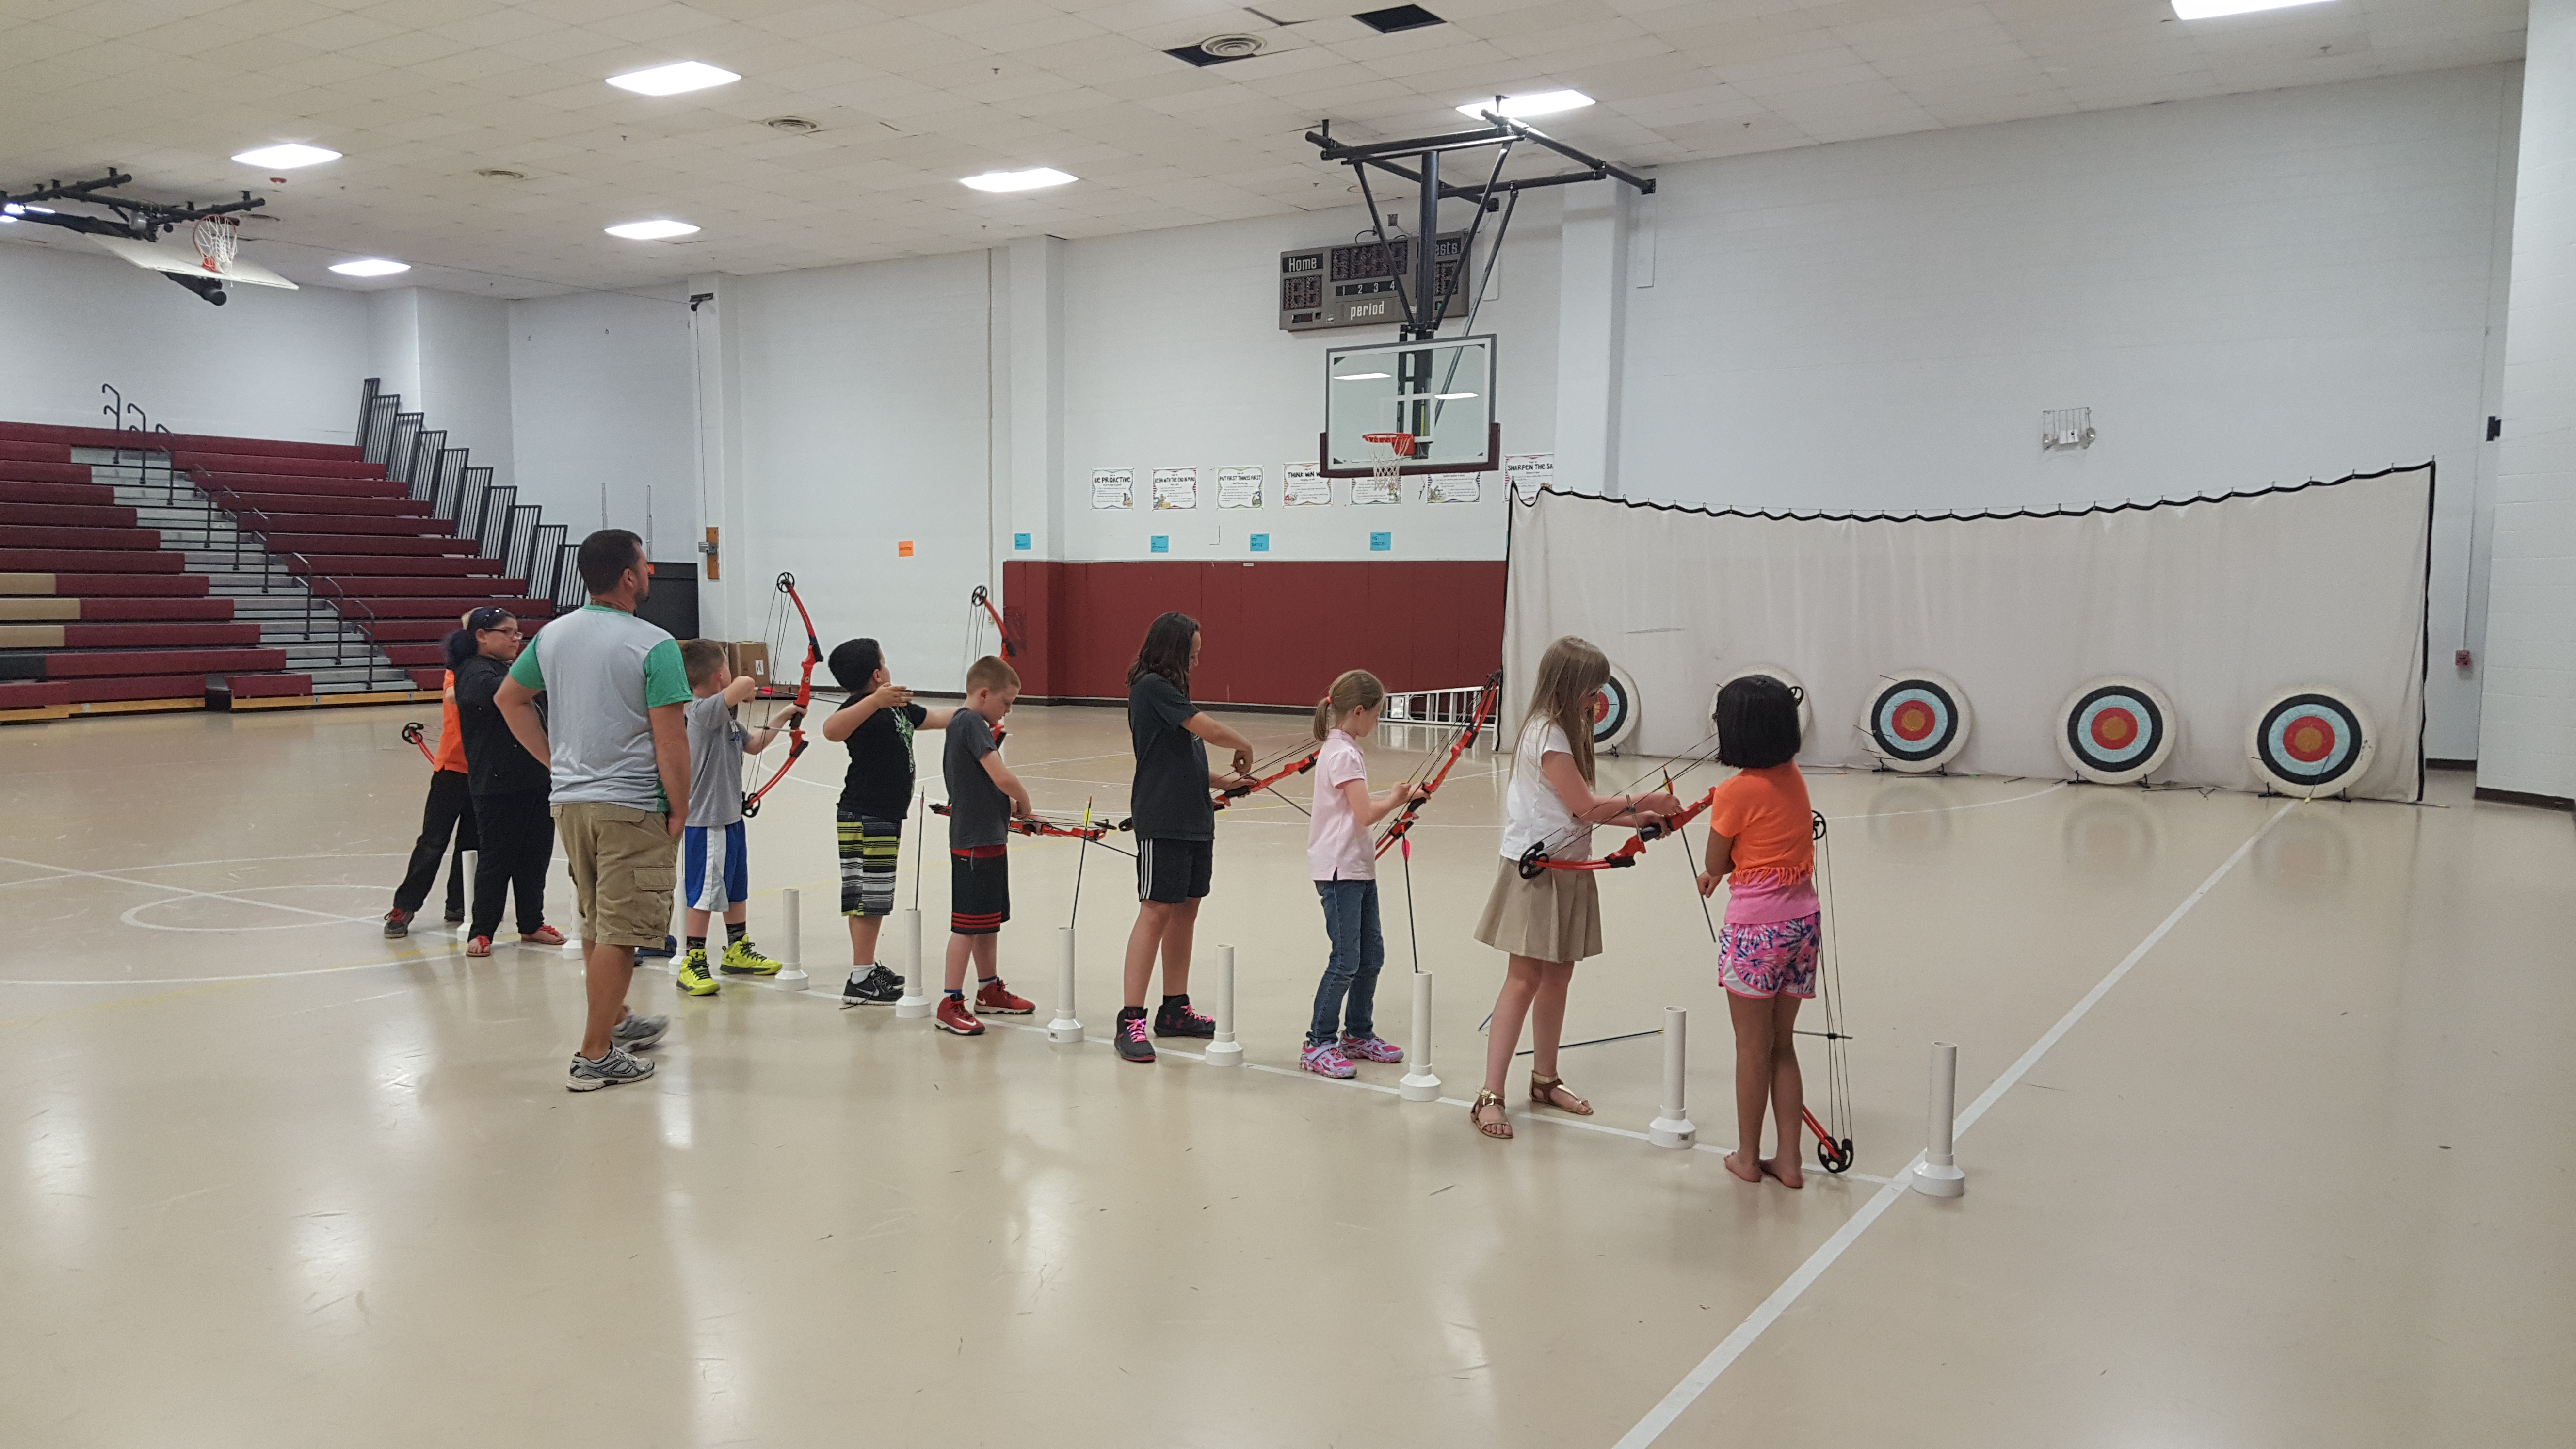 Archery: On Target for life at CLC